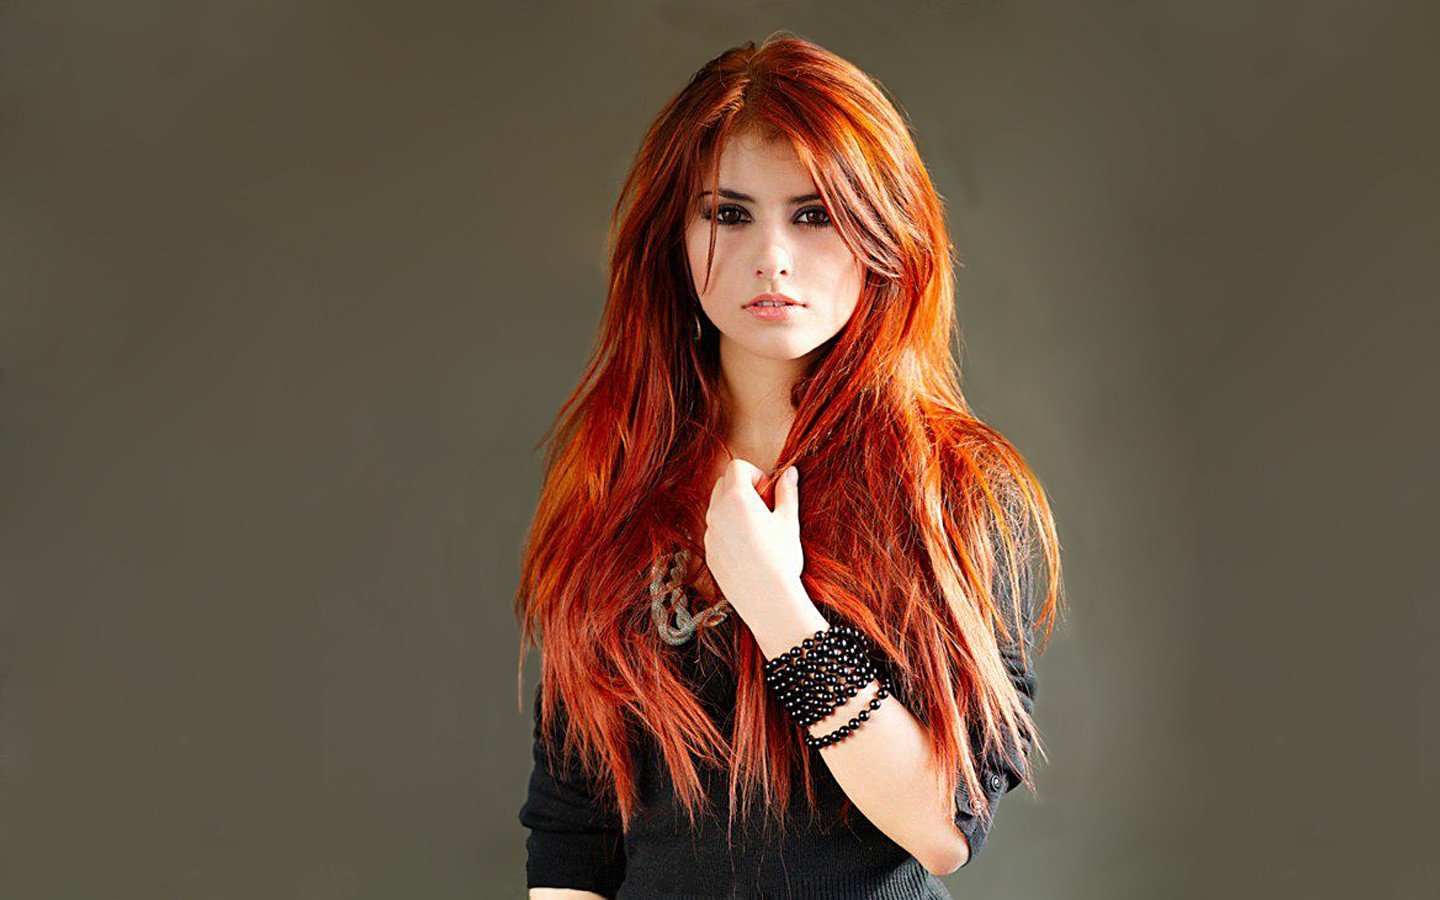 Gorgeous Redhead wallpapers Gorgeous Redhead stock photos 1440x900